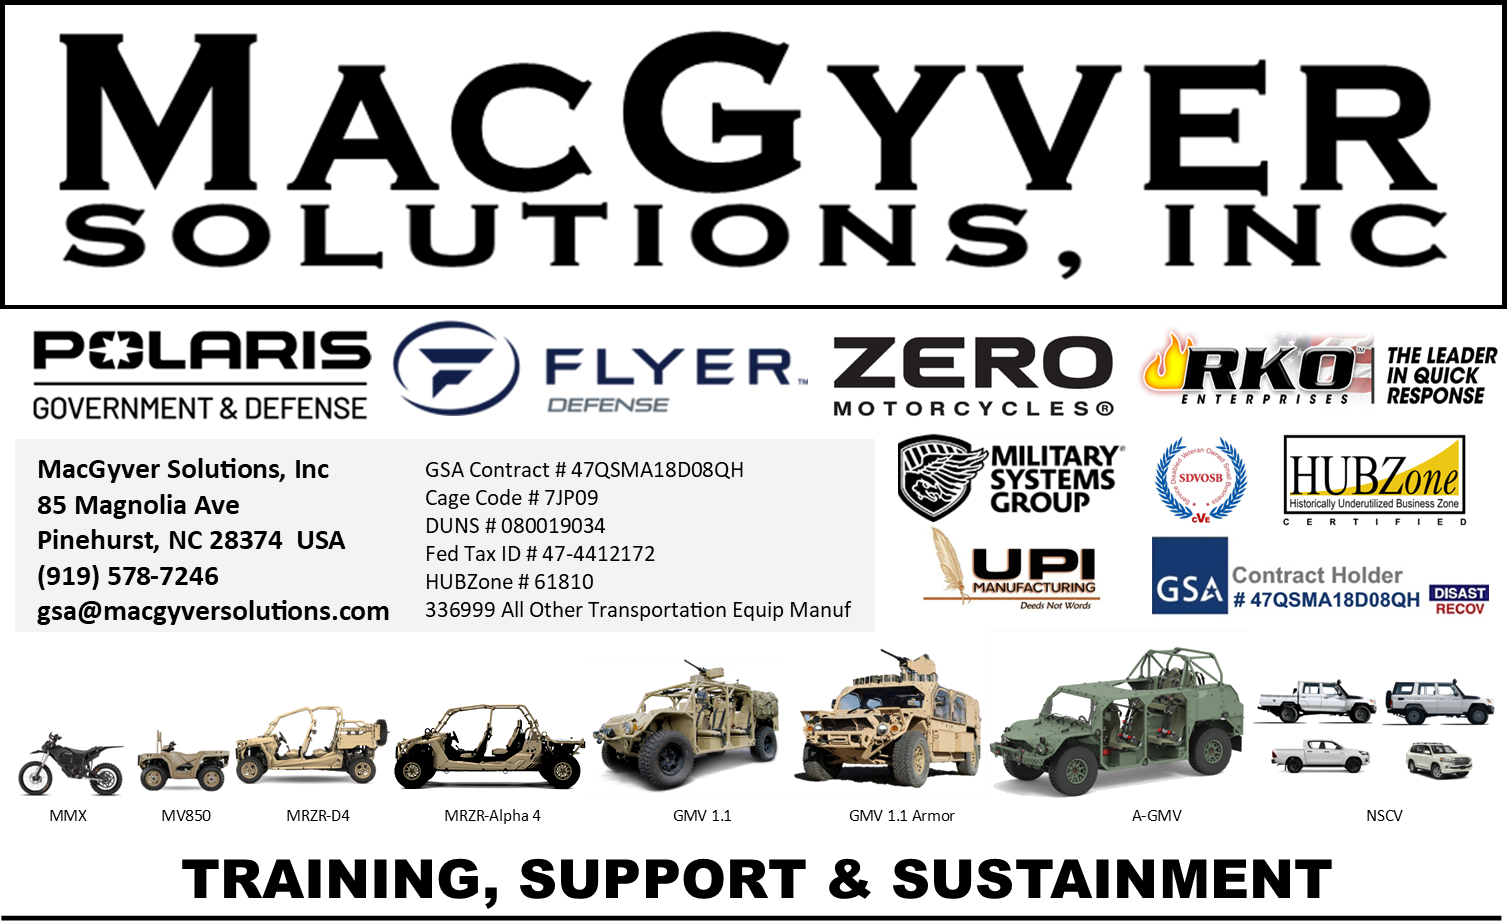 MacGyver Solutions provides Training, Support and Sustainment for Zero Electric Motorcycle MMX, Polaris MV850 ATV, MRZR, MRZR-D, MRZR Alpha, Flyer Defense GMV 1.1, Armored GMV, A-GMV and Toyota NSCV platforms.